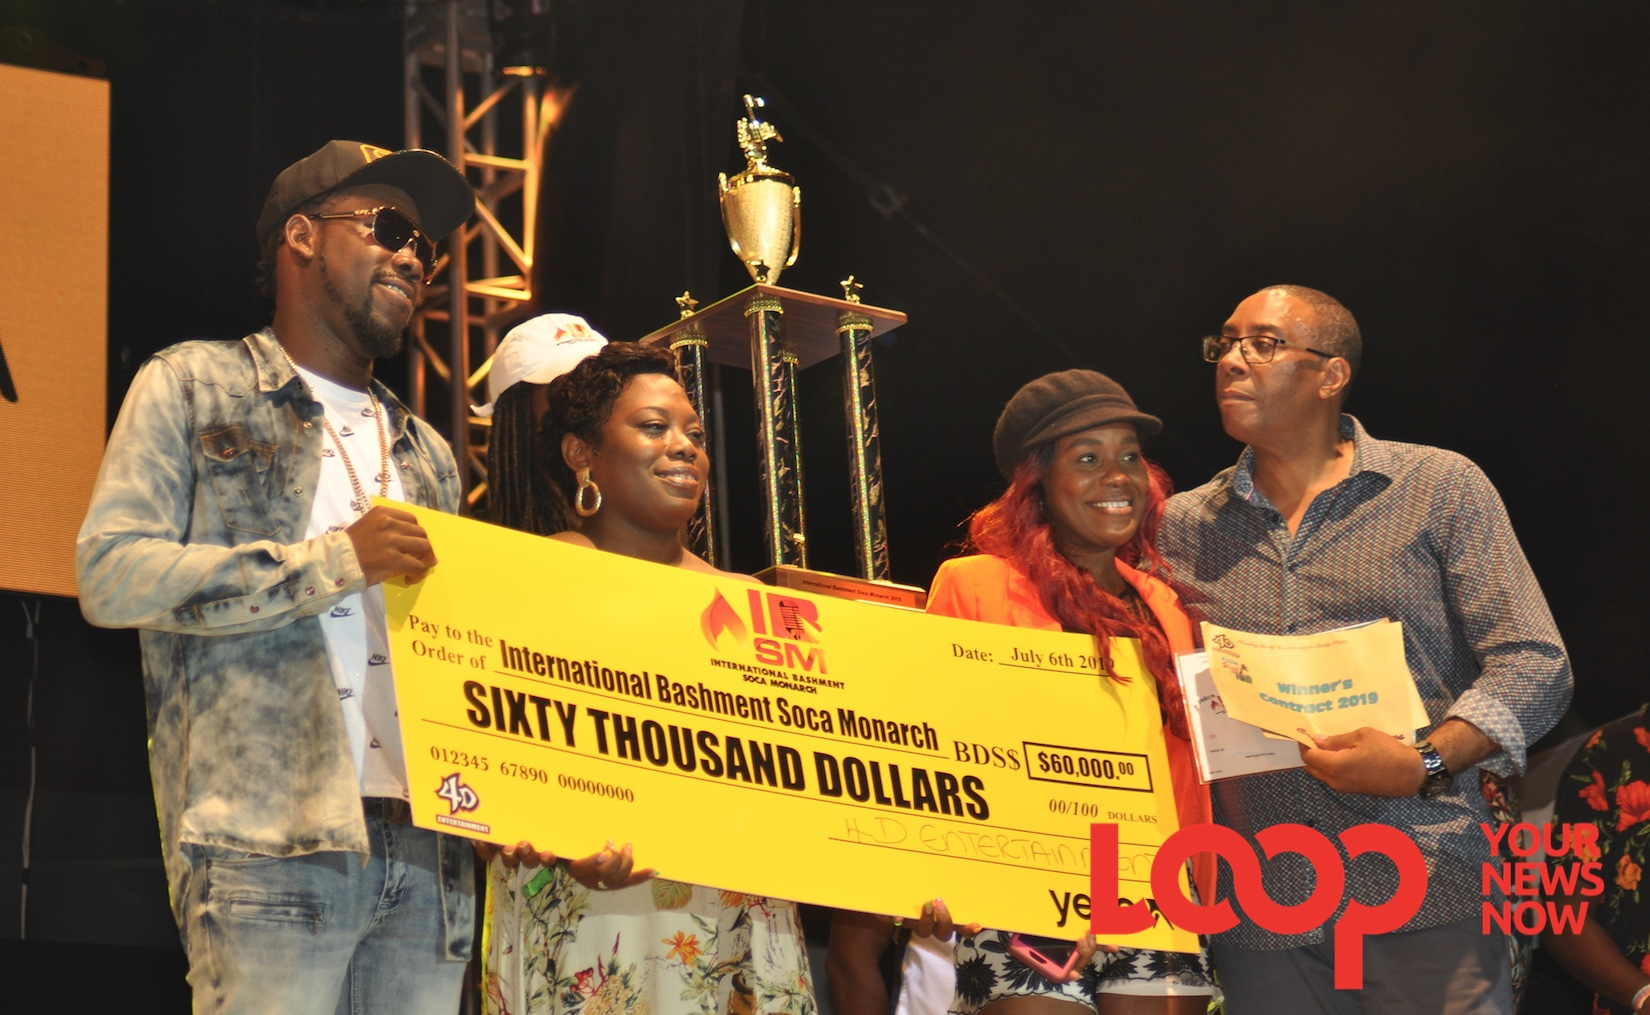 In winner's circle: International Bsshment Soca Monarchm SK (left) along with Stephanie Chase (second right), a representative for King Bubba FM, who also tied in first position, accepts the $60,000 prize check, trophy and other prizes from Minister of Culture, the Creative Economy and Sports, John King.